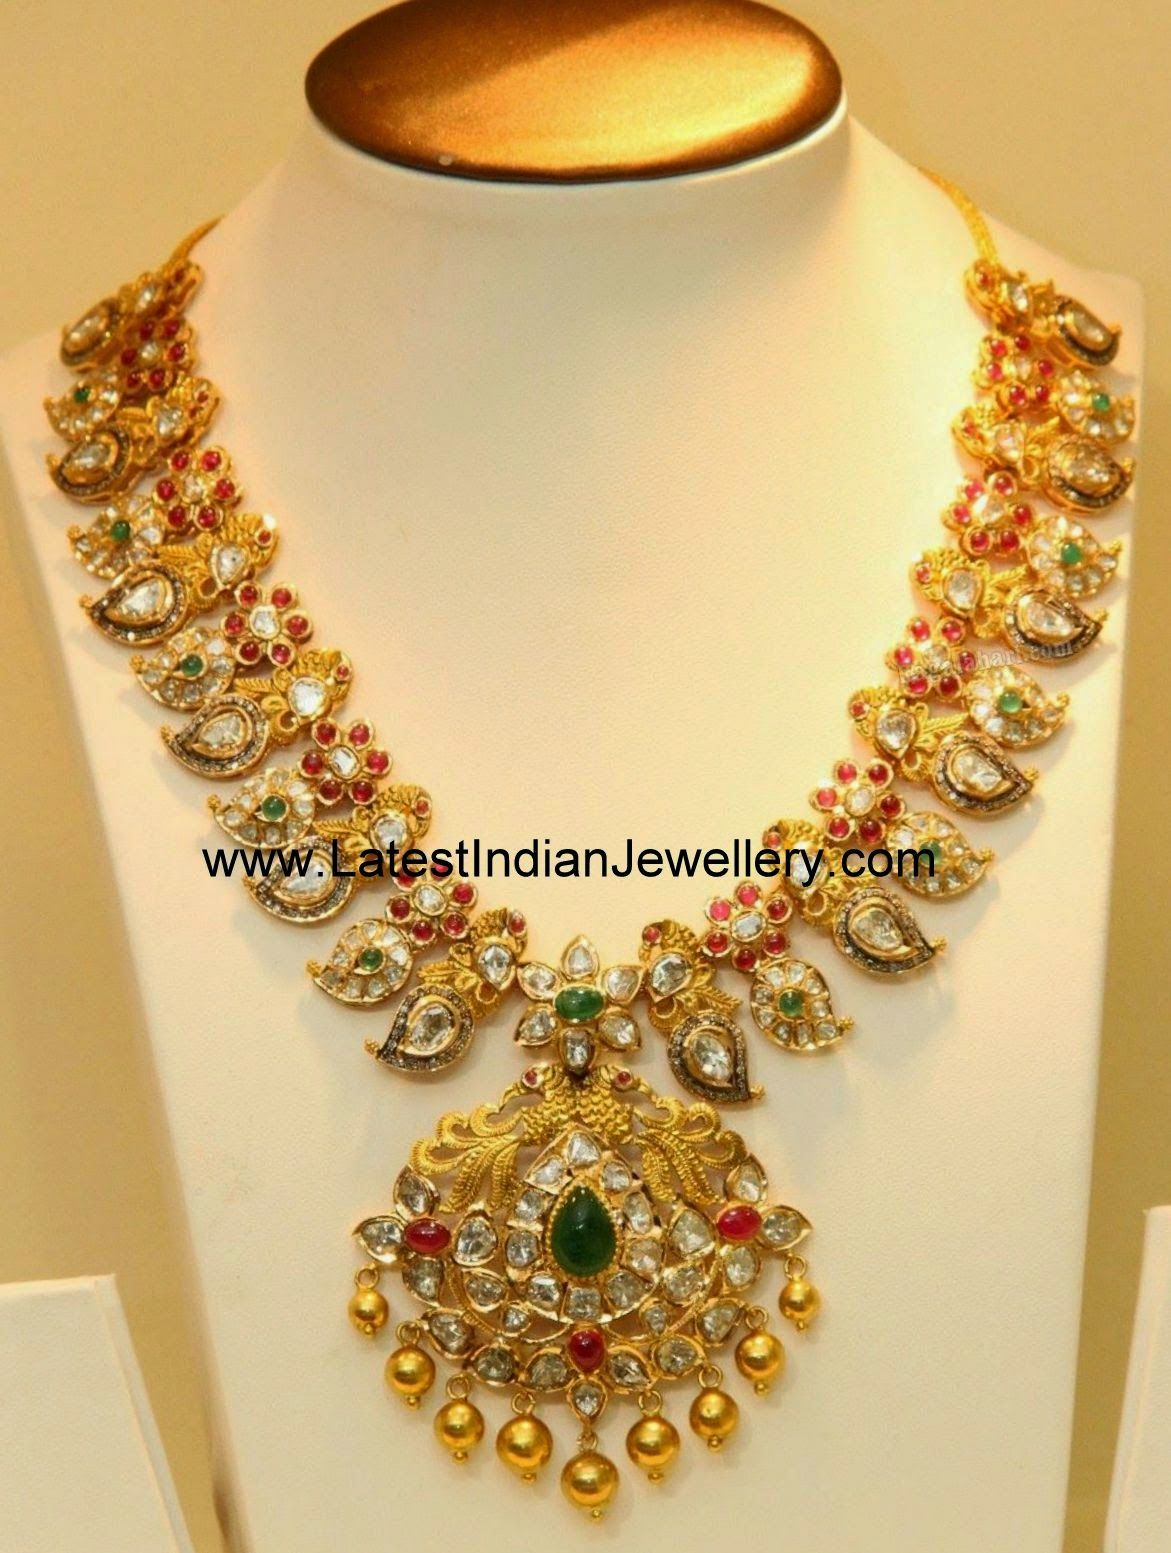 Latest gold necklace designs in grams pachi necklace latest jewellery - Pachi Work Mango Haram